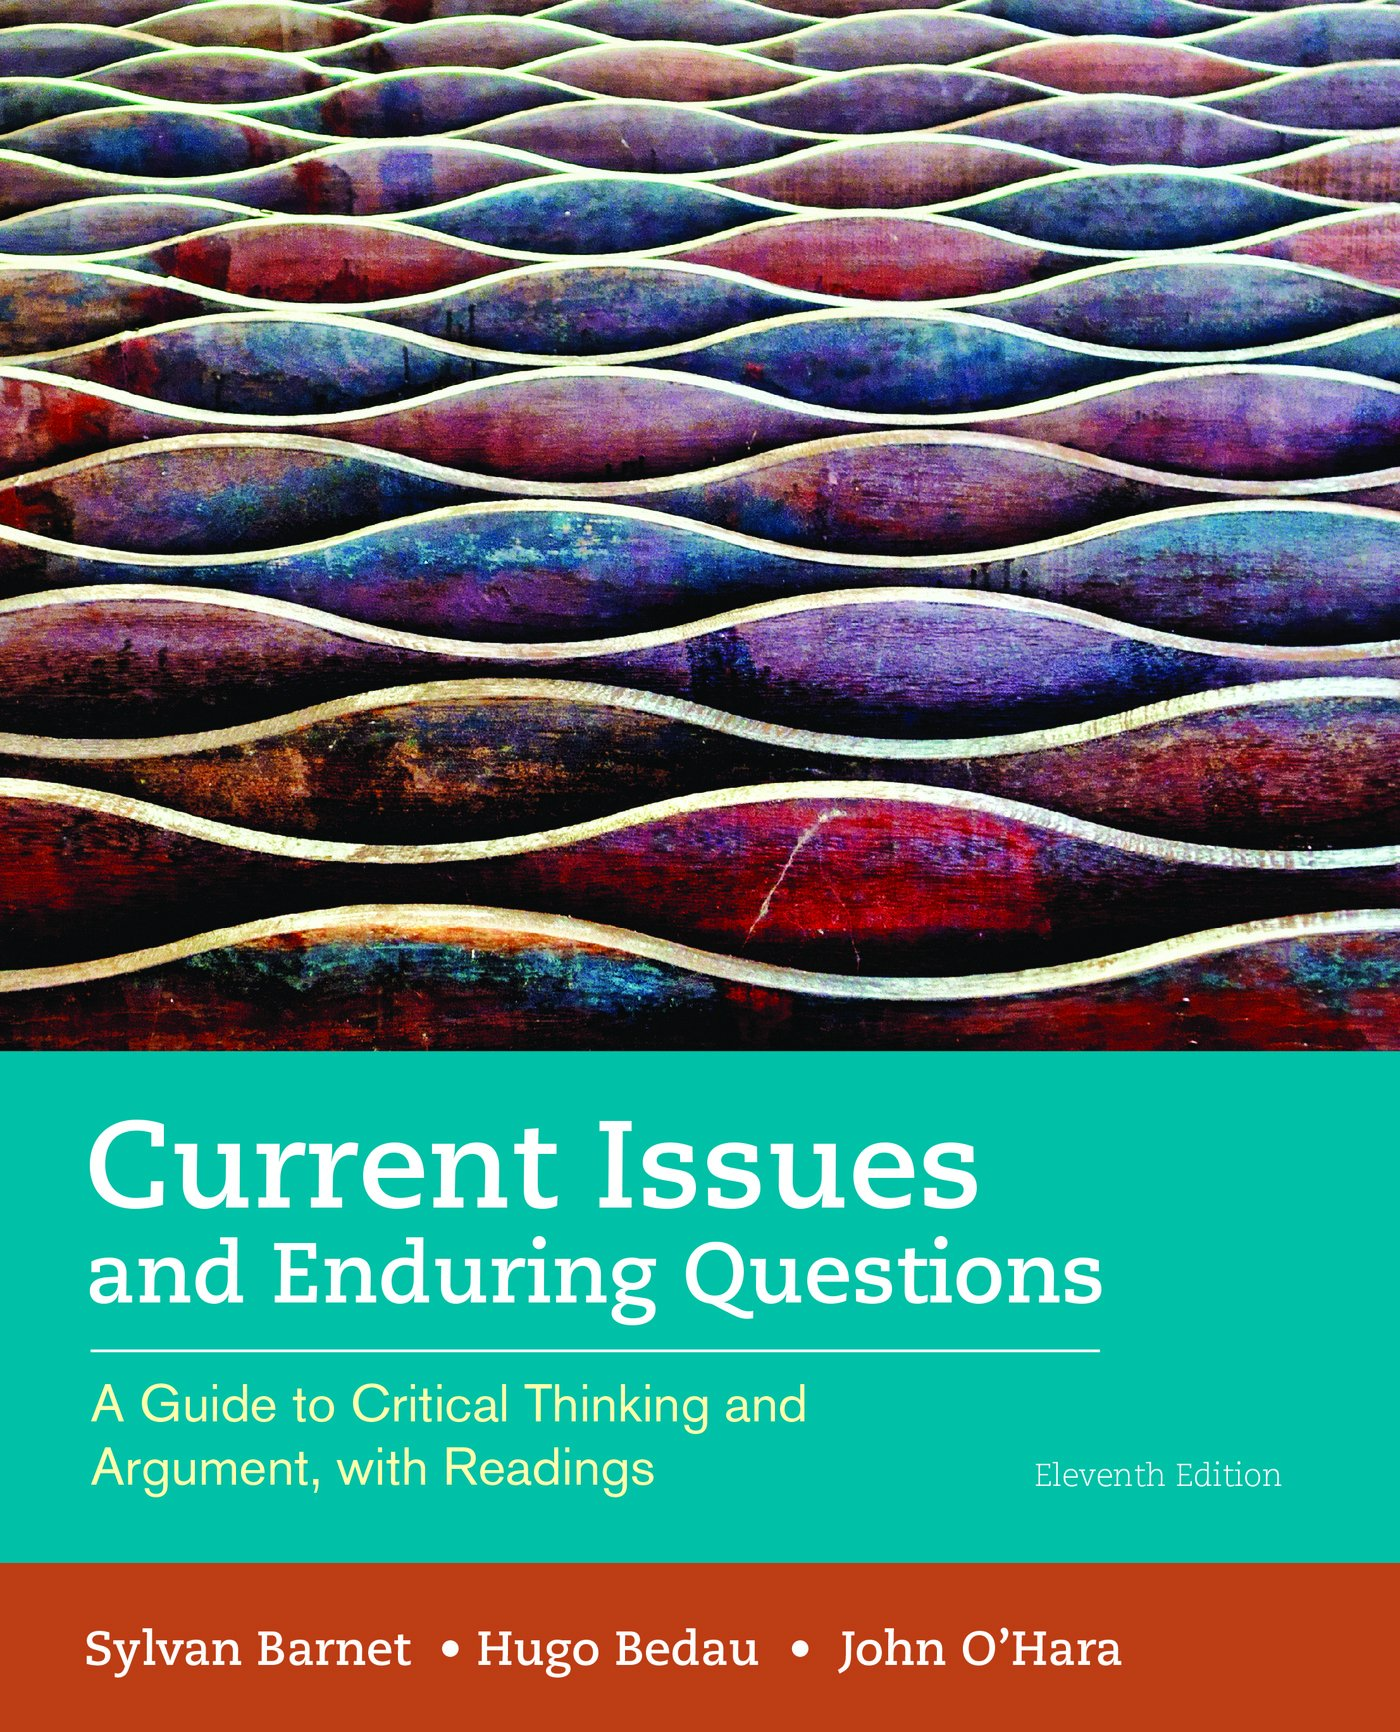 Current Issues and Enduring Questions: A Guide to Critical Thinking and Argument, with Readings by Bedford/St. Martin's